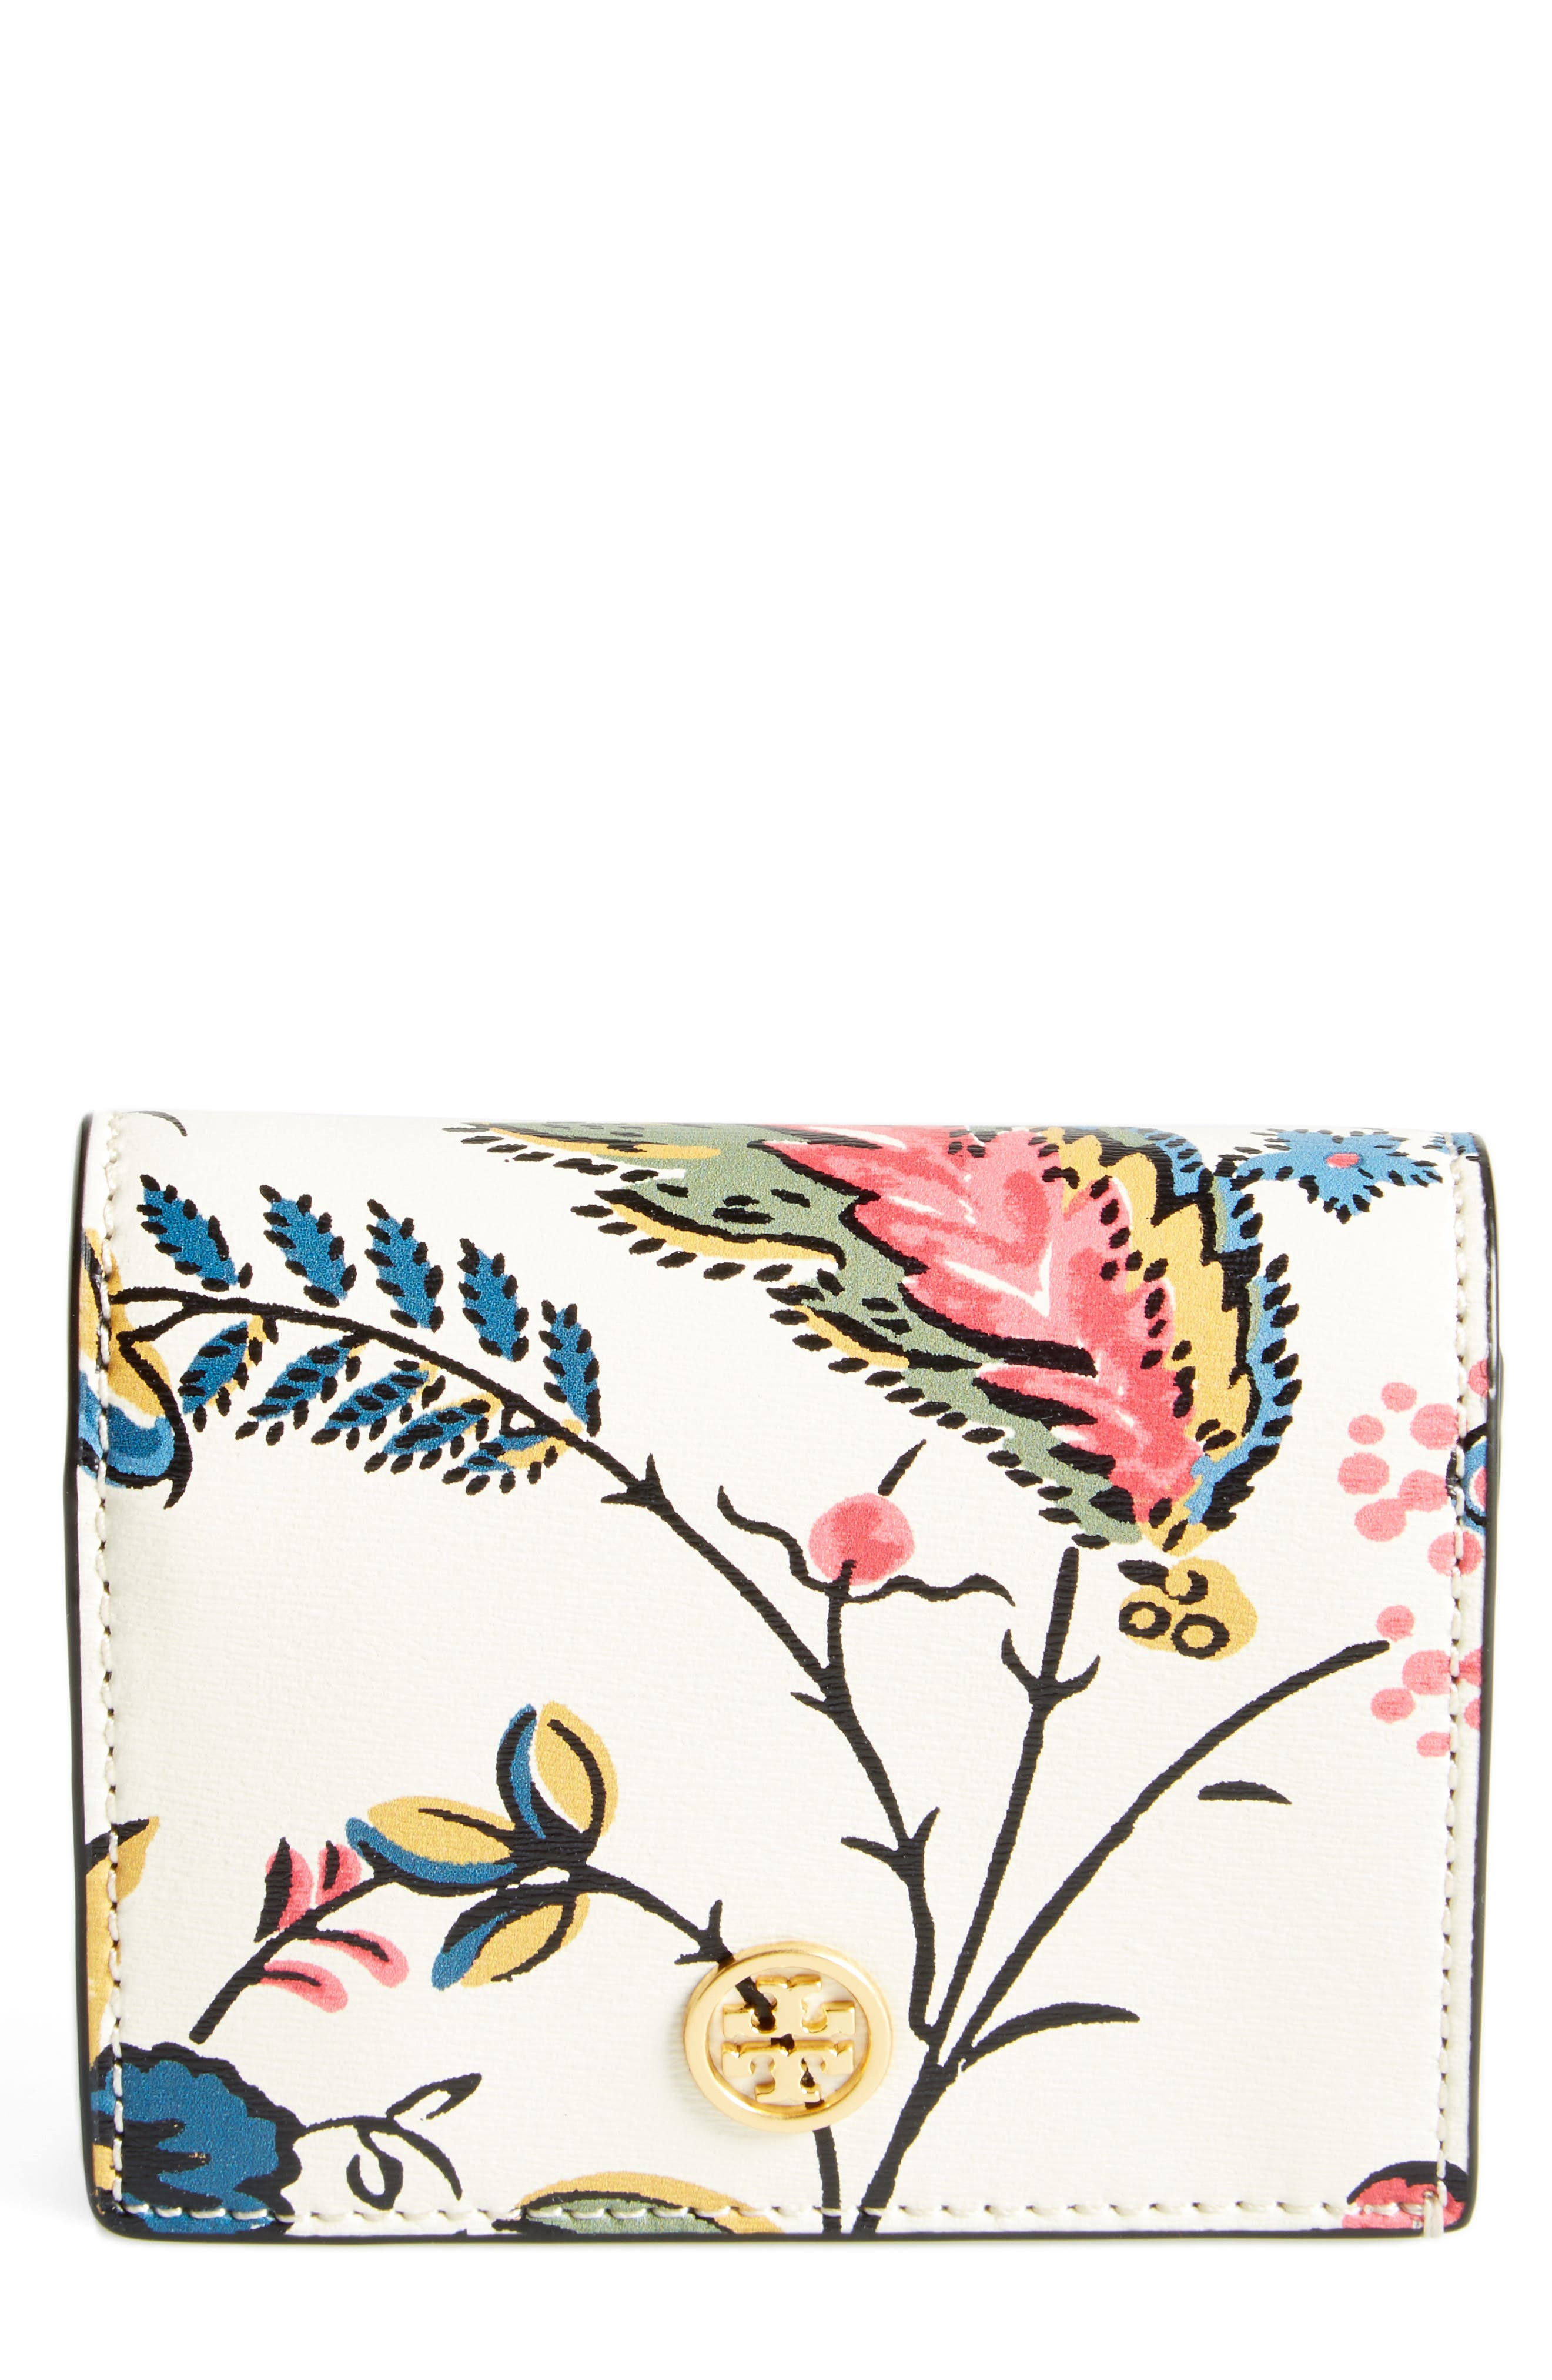 Tory Burch Floral Leather Mini Wallet